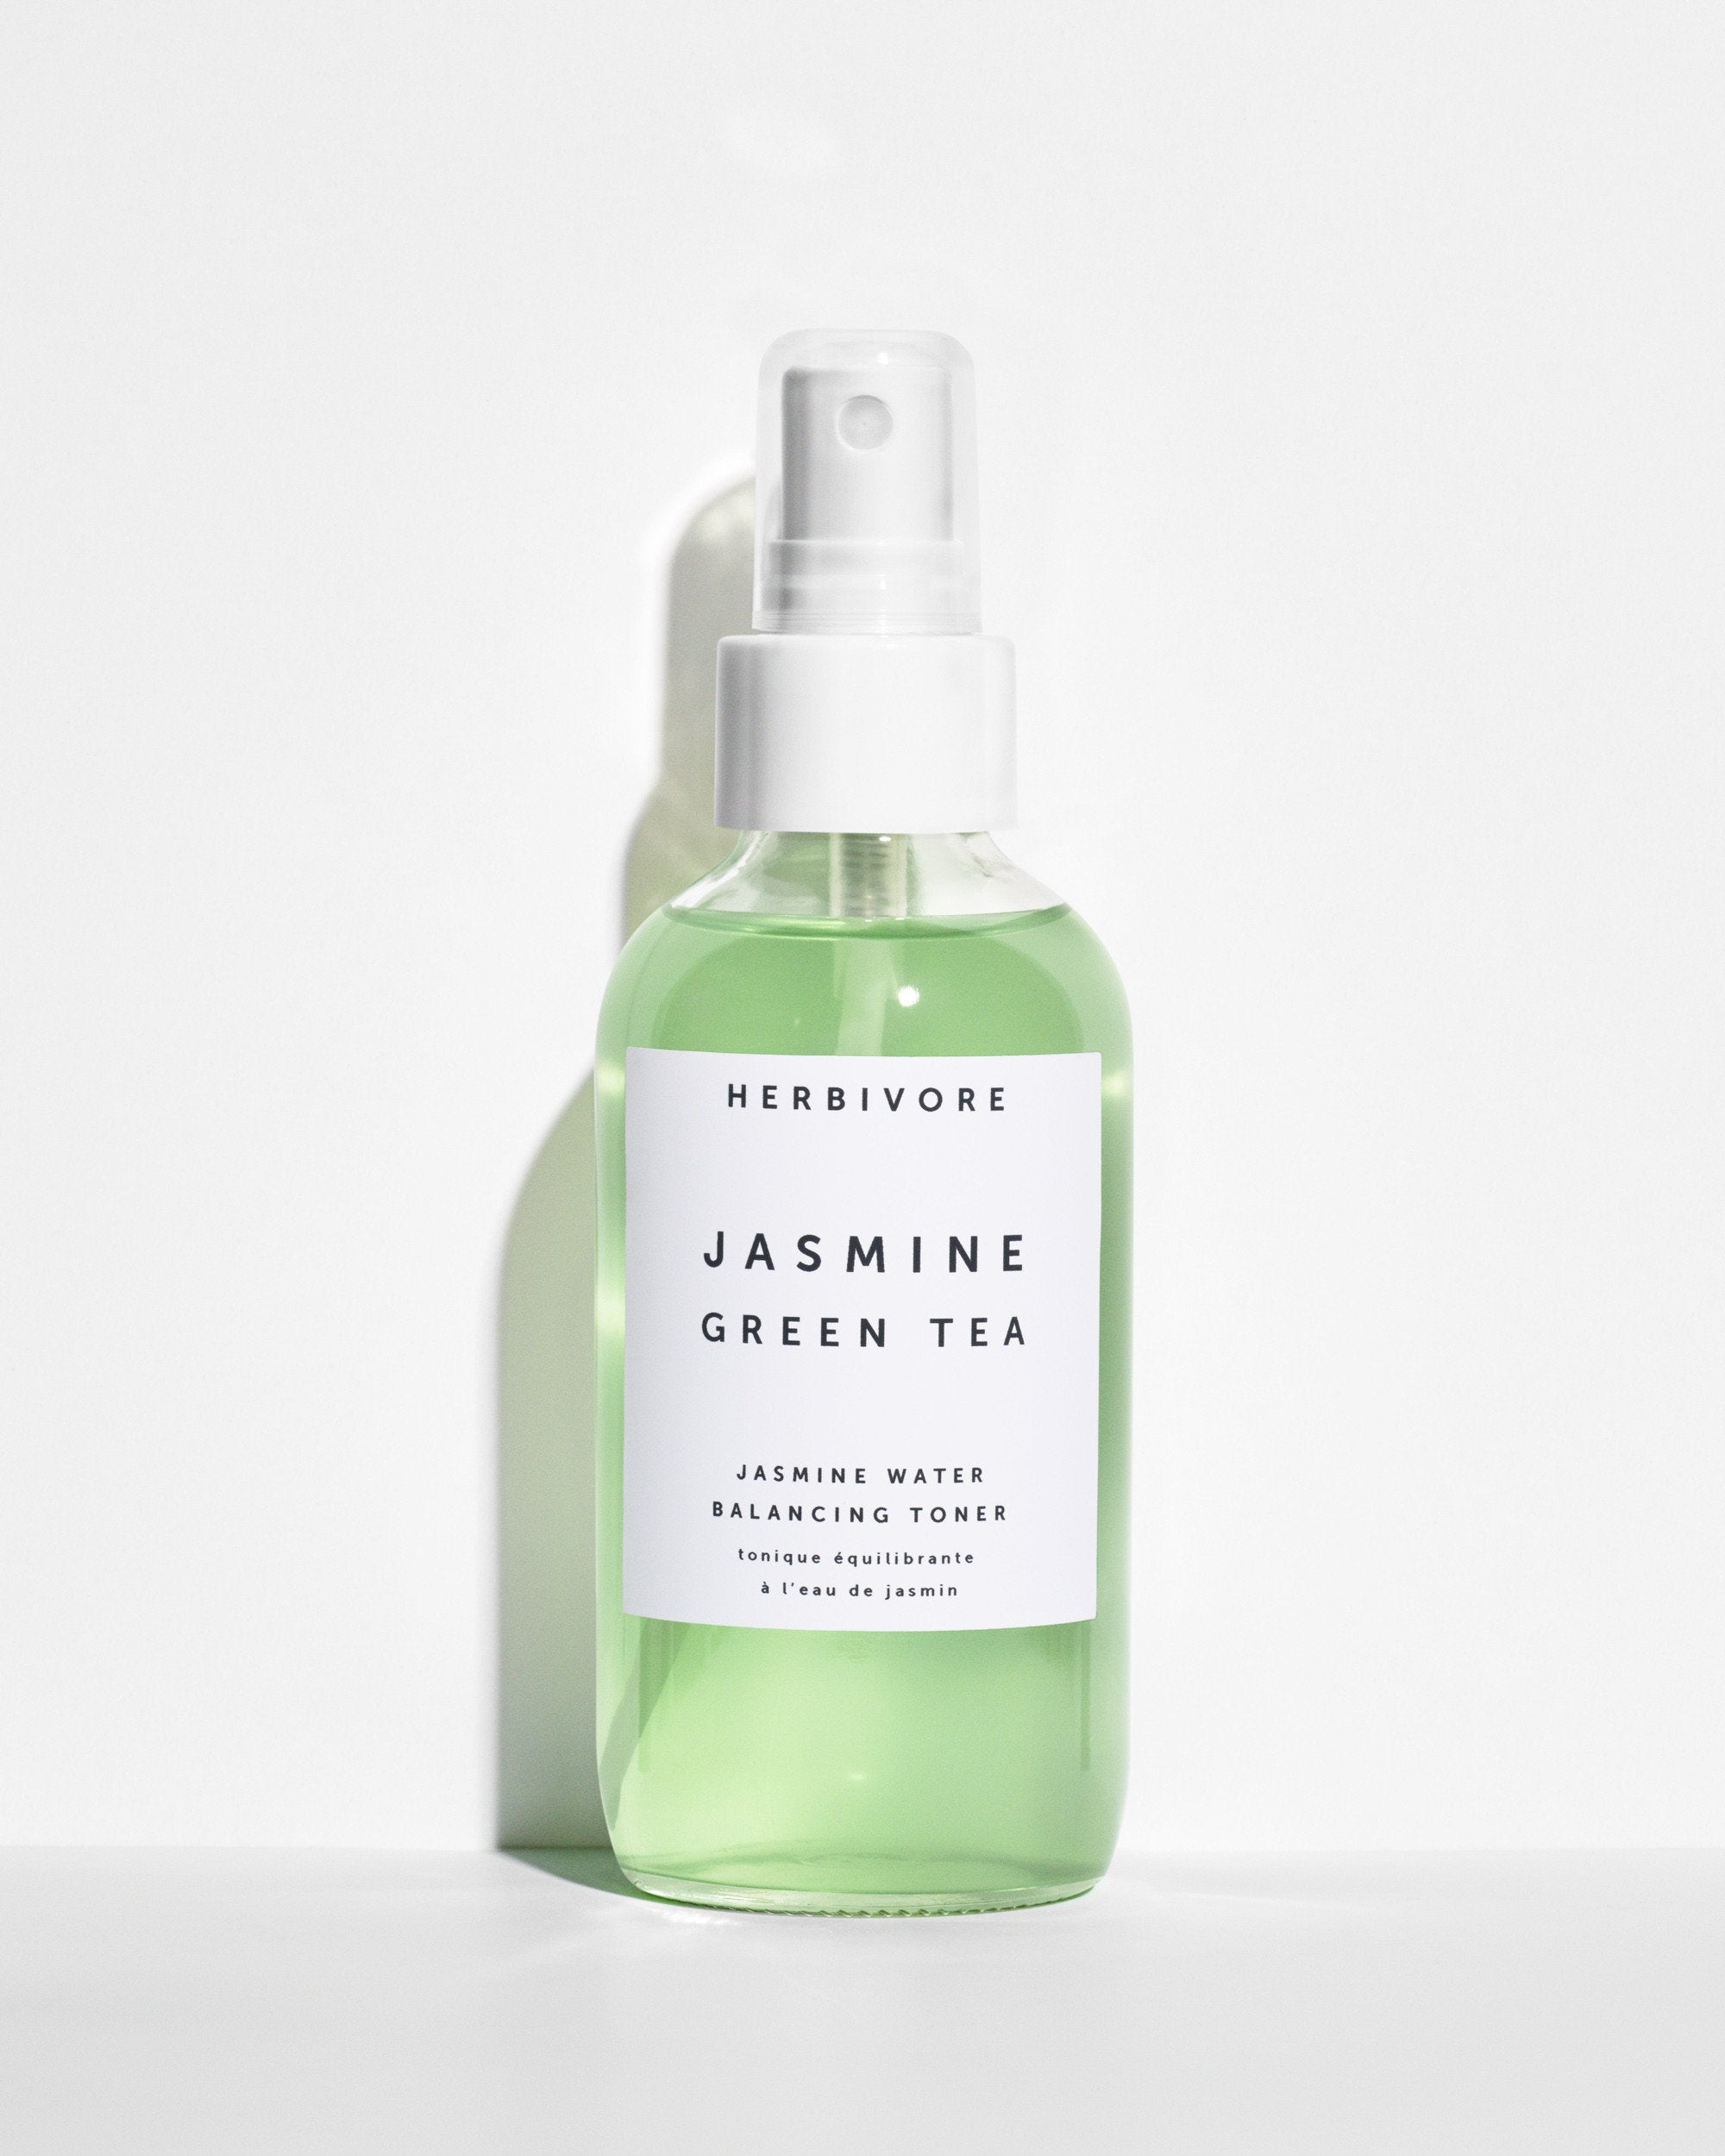 herbivore-jasmine-green-tea-balancing-toner-clean-skincare-glass-packaging